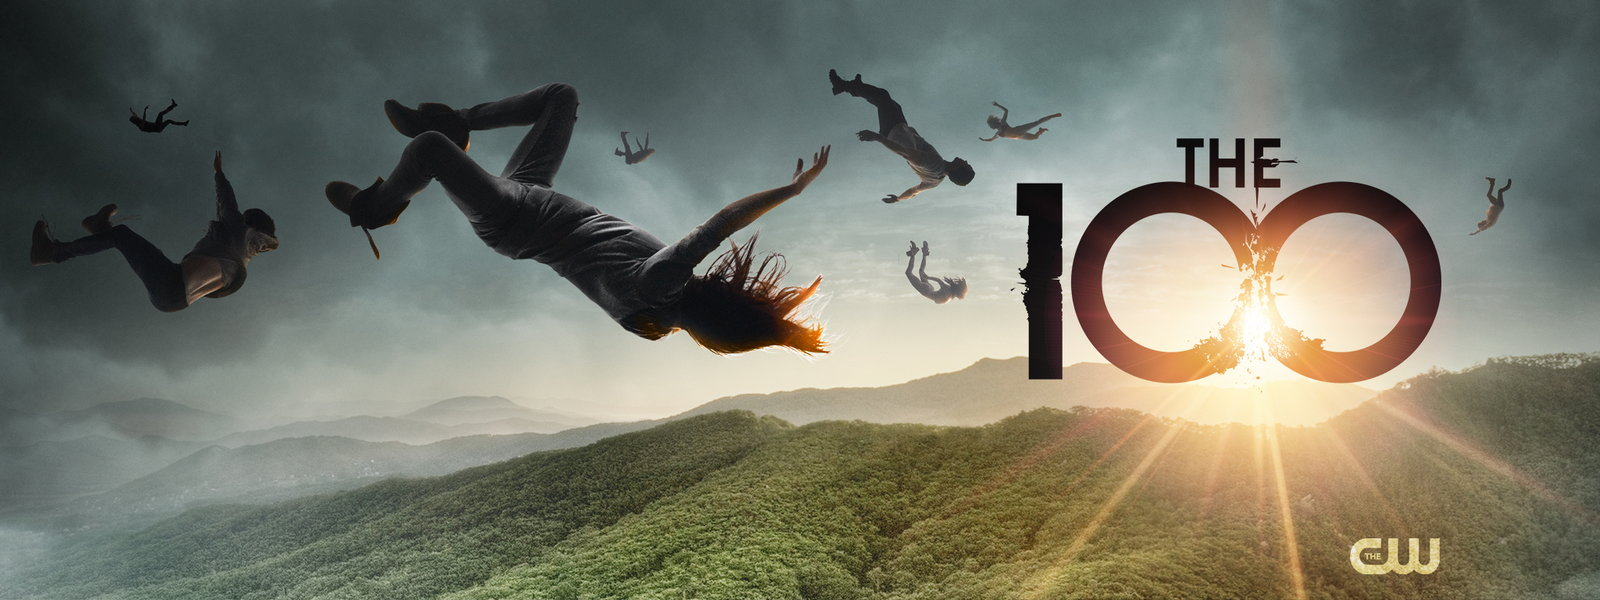 the 100 s1 banner